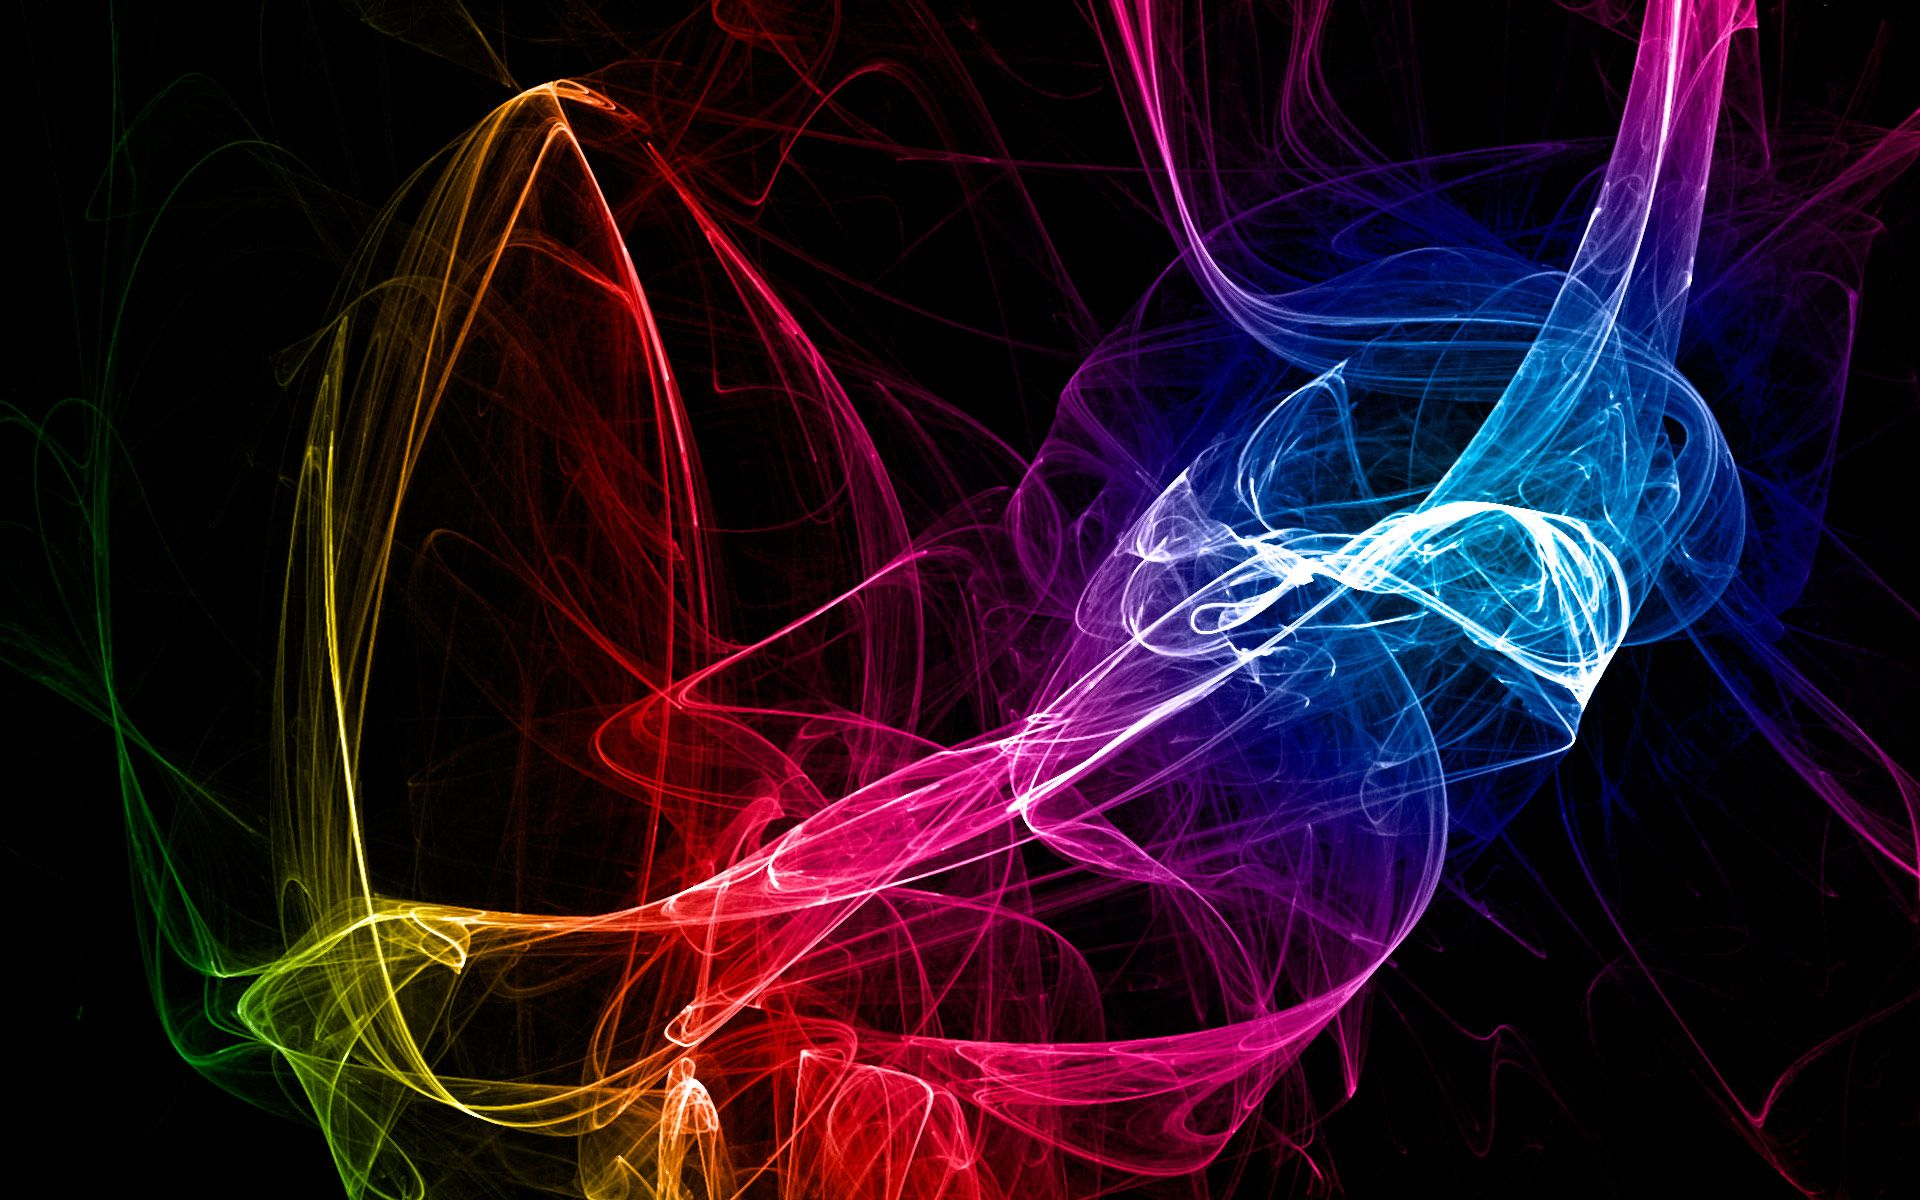 Free 43 Colorful Desktop Backgrounds Free Wallpaper Backgrounds Backgrounds Desktop Desktop Background Pictures